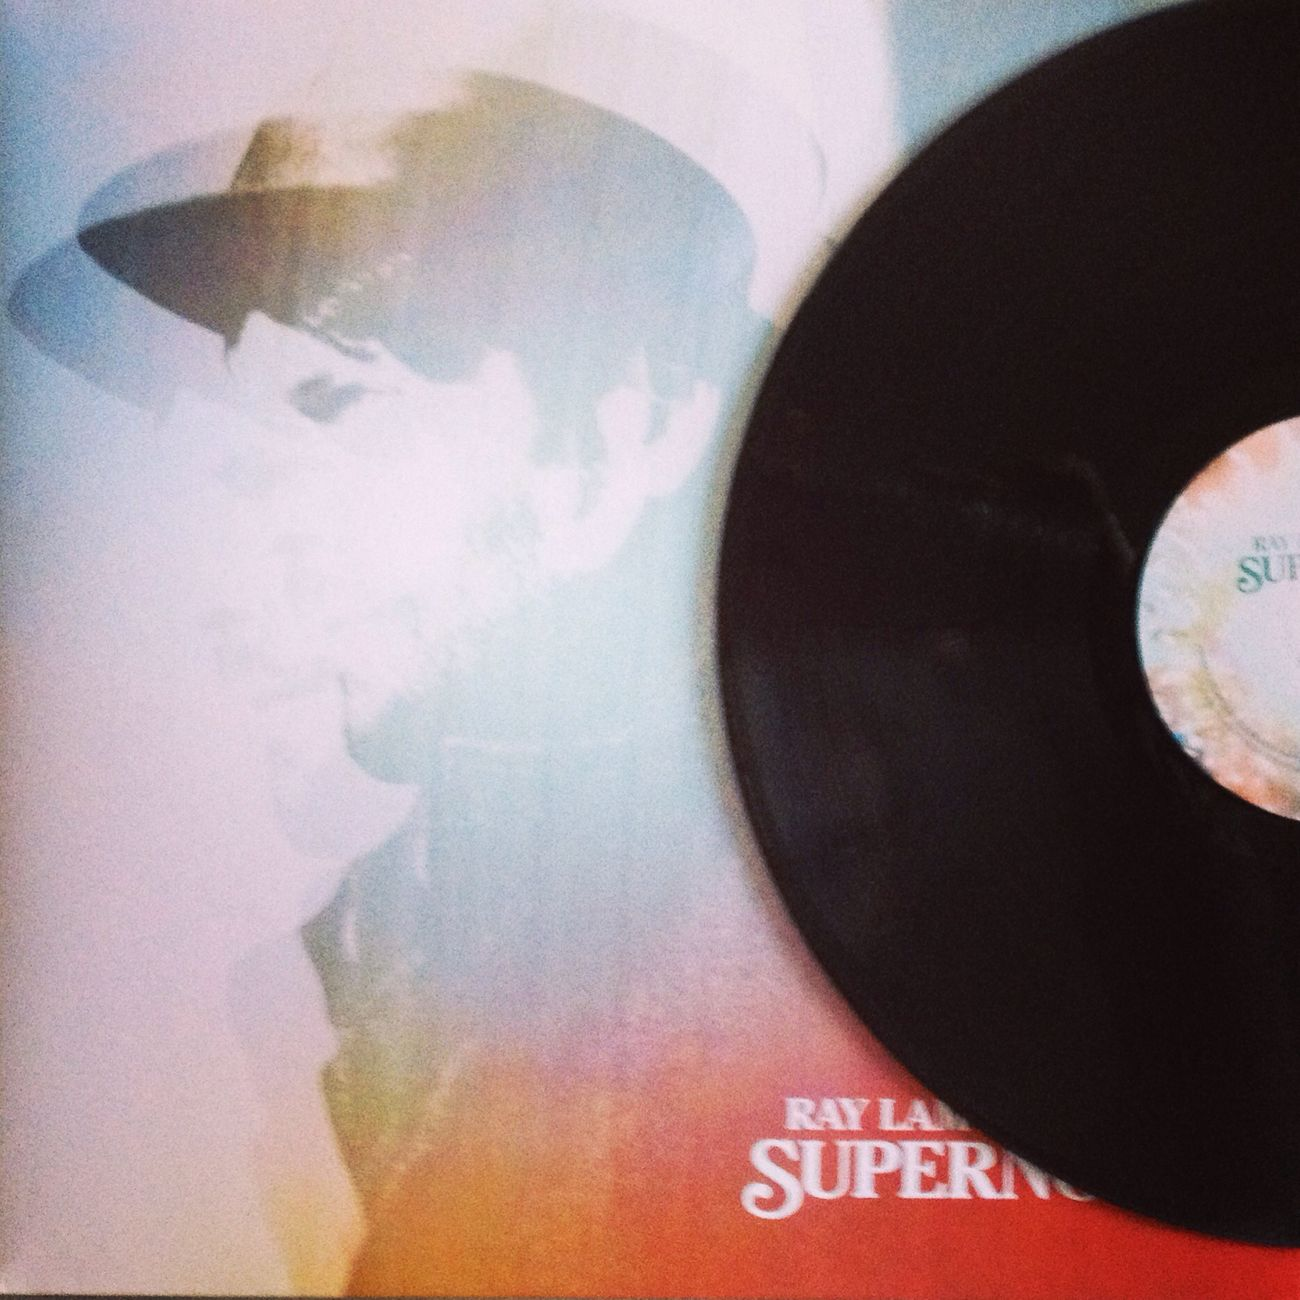 "Now spinning Ray Lamontagne ""Supernova"" Ray Lamontagne Vinyl Music My Vinyl Collection"